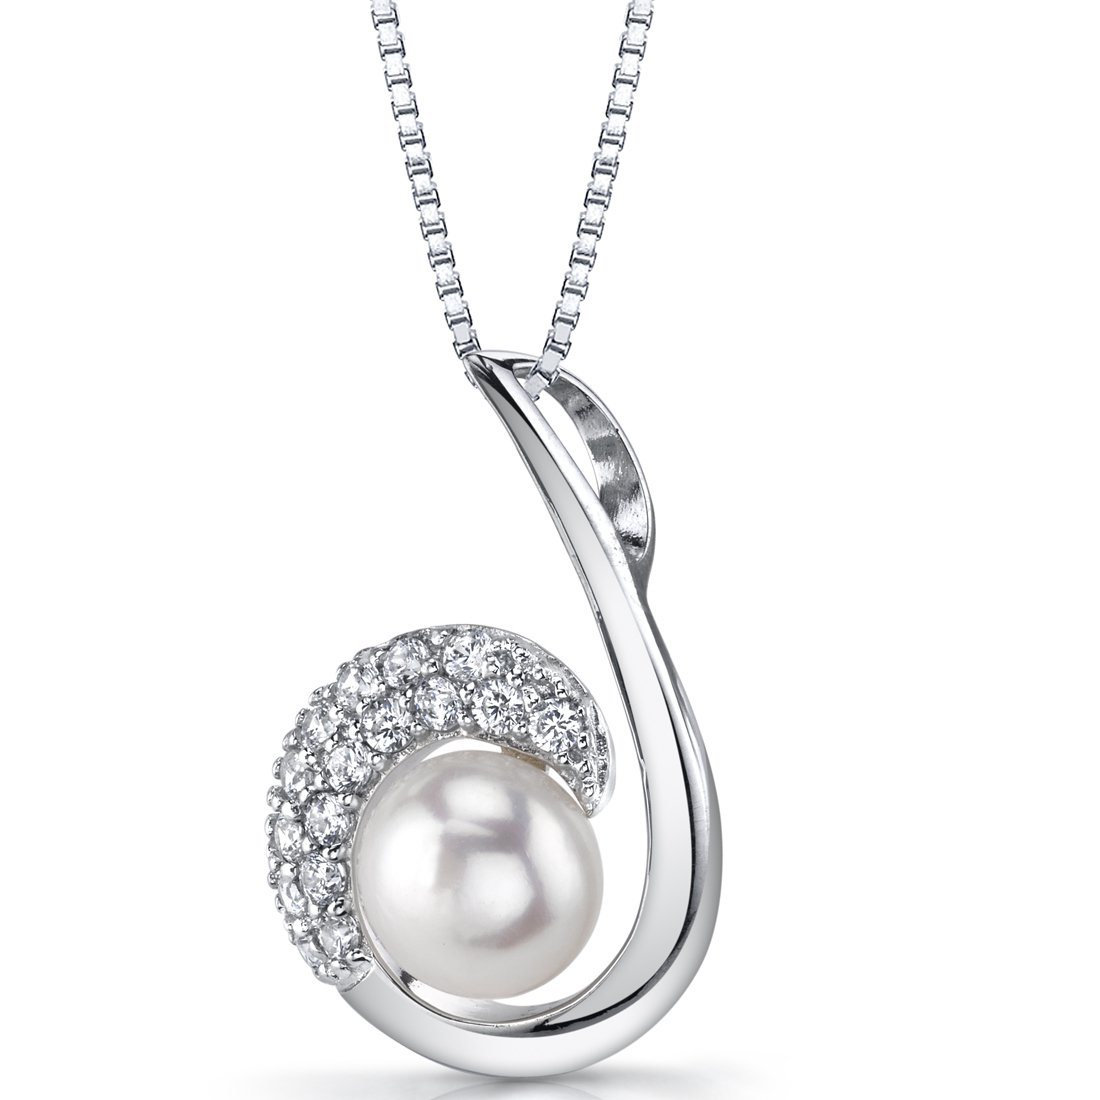 Sterling Silver 8.0mm Casual White Pearl Necklace